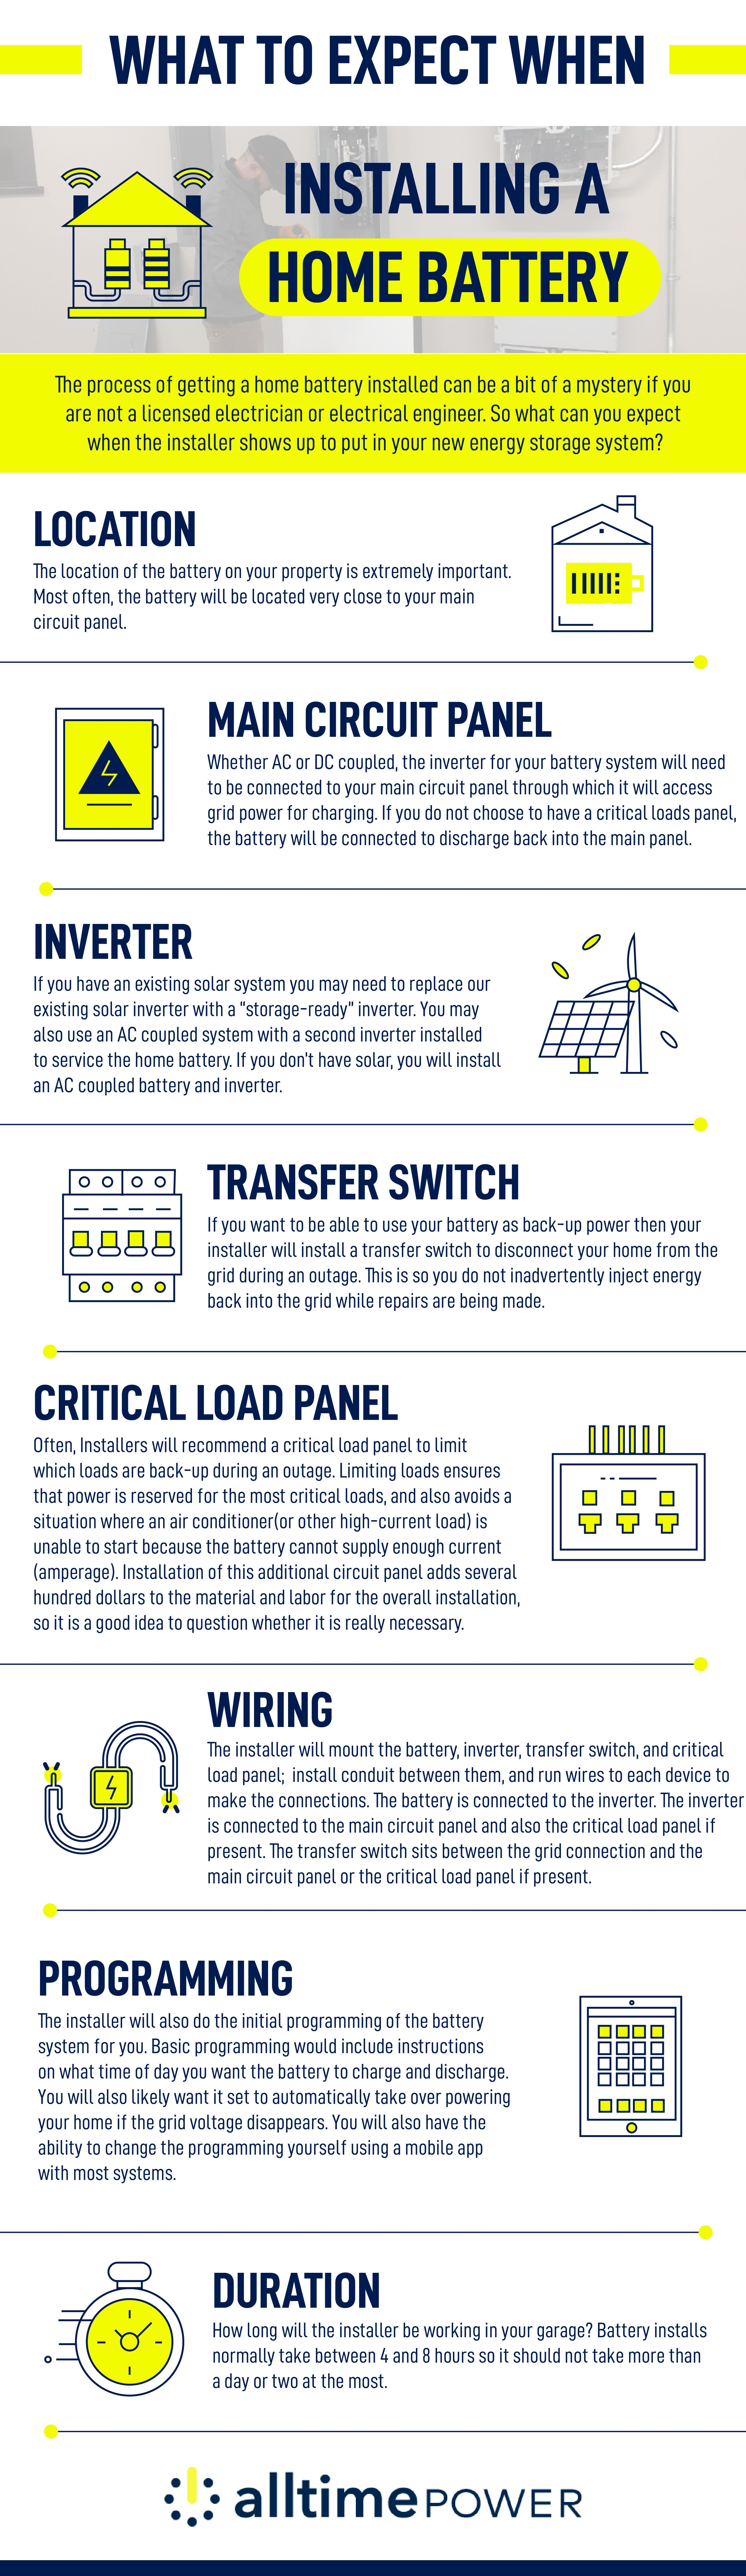 What to expect when installing a home battery